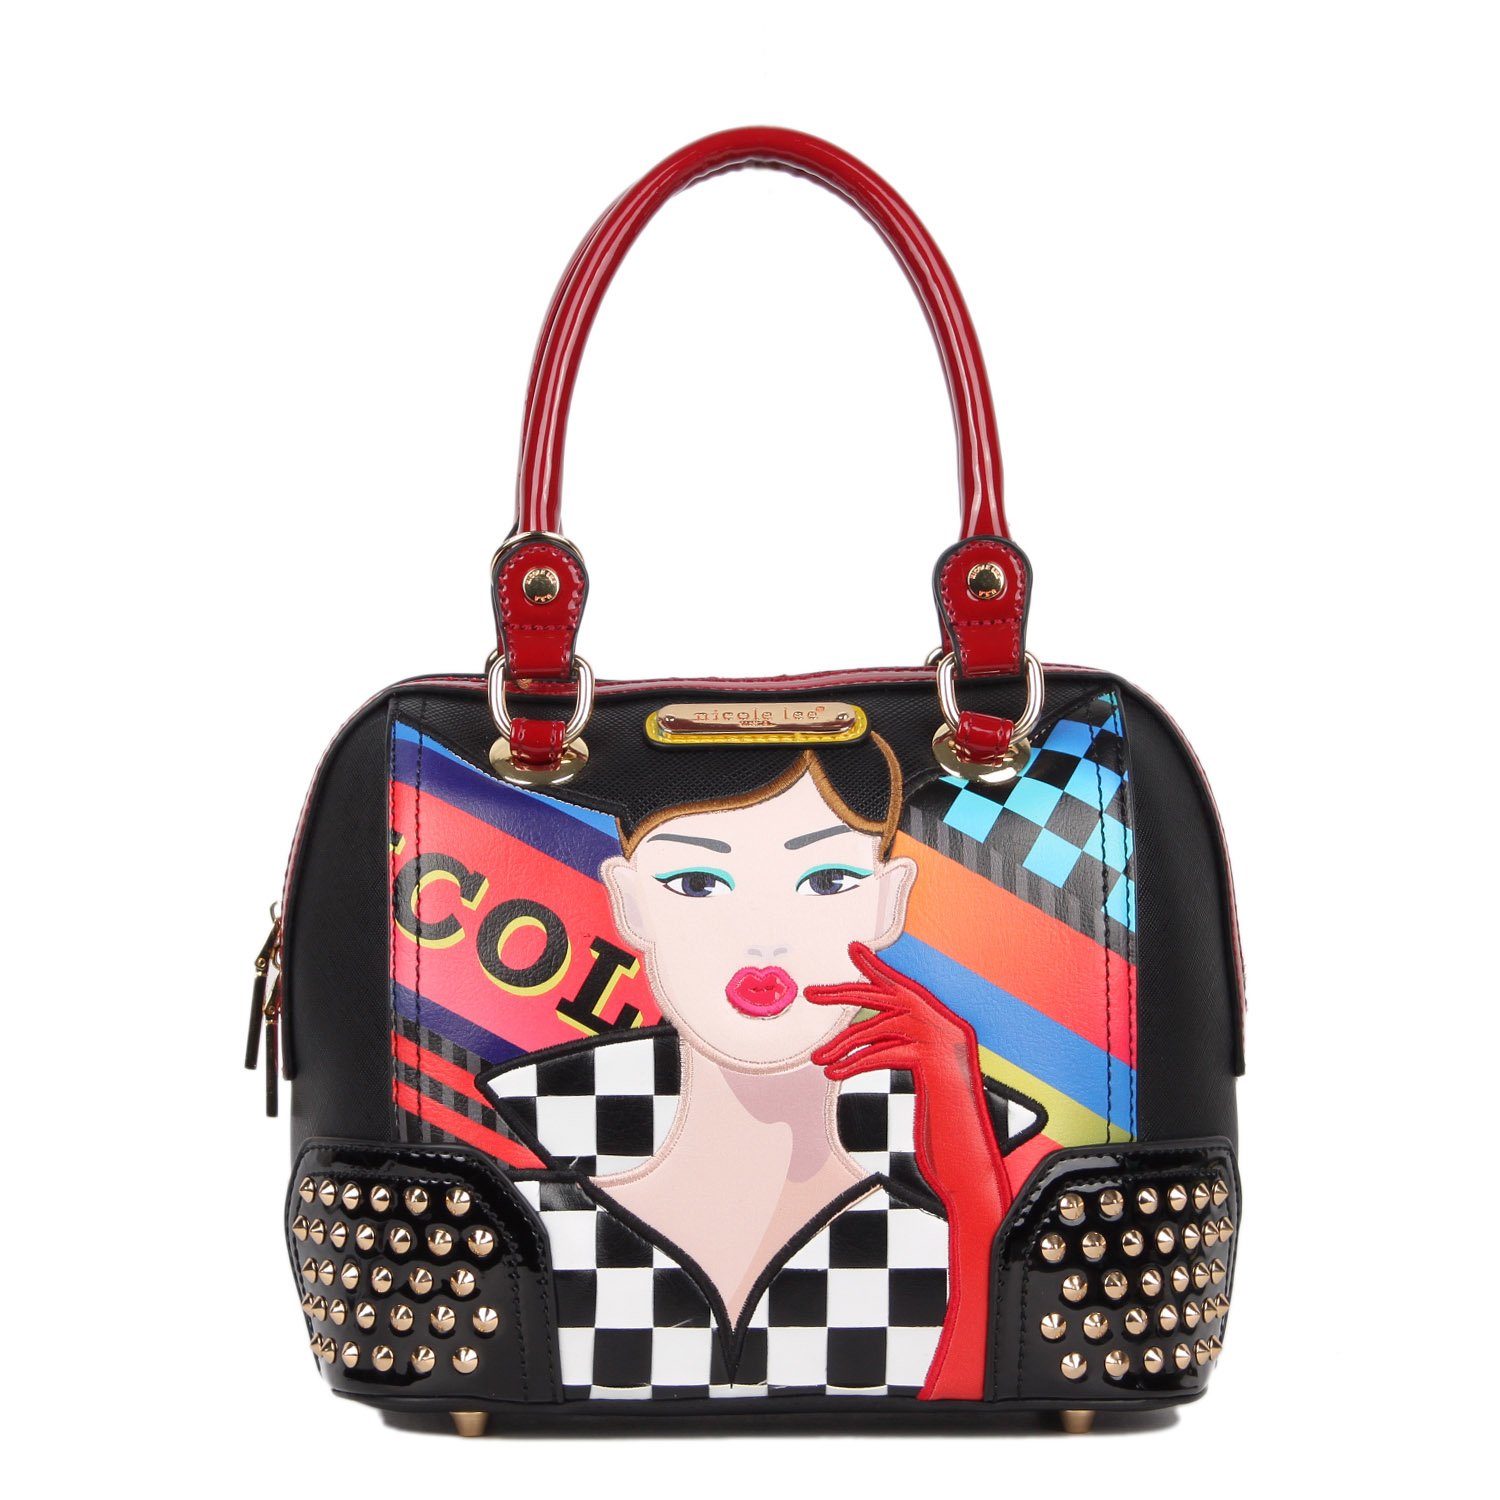 RACING GIRL PRINT SMALL DOME BAG